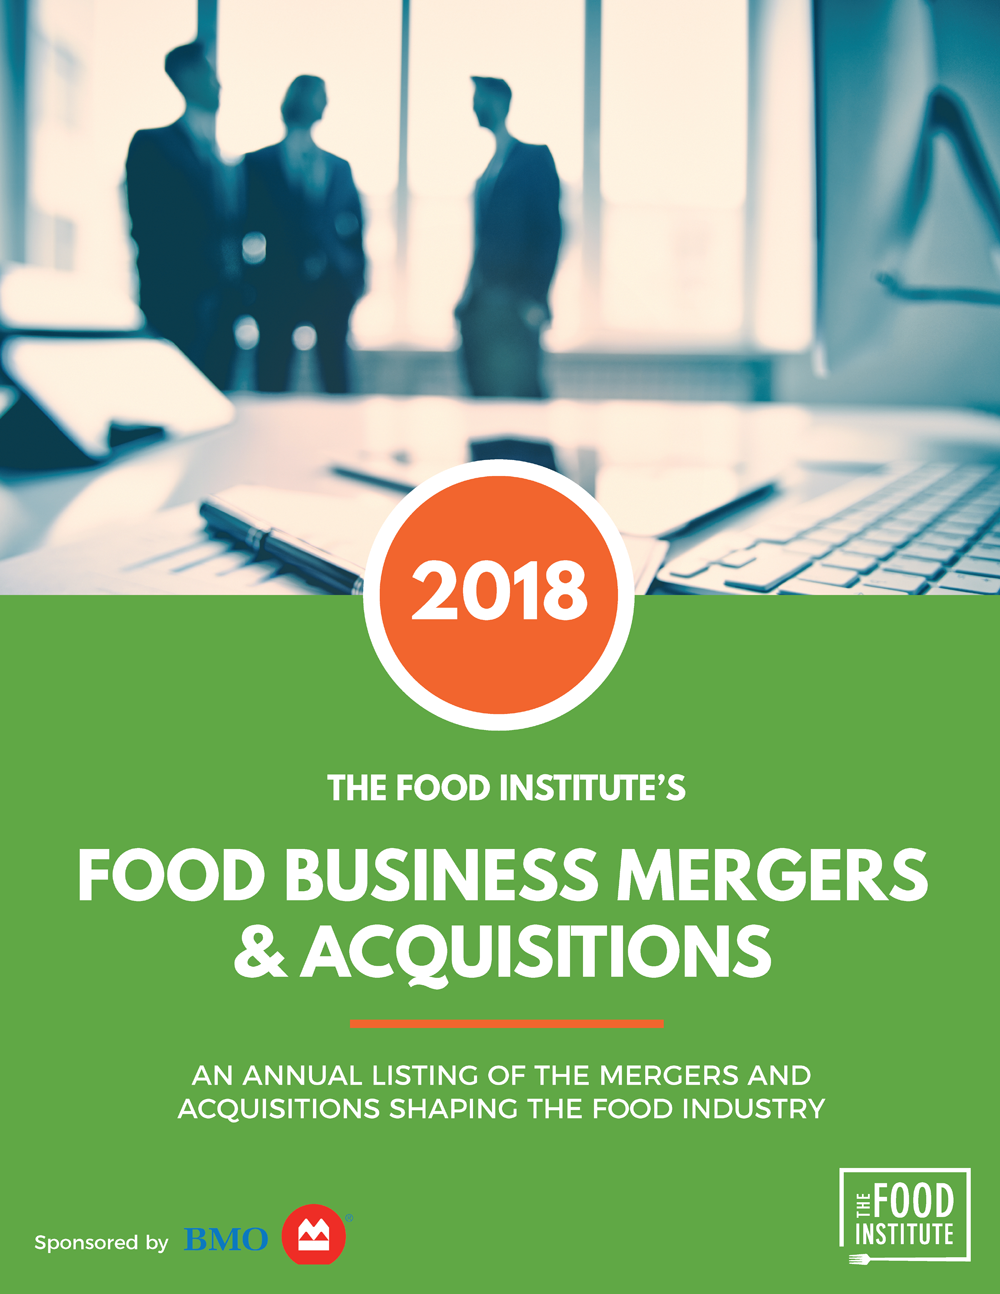 Food Business Mergers & Acquisitions 2018